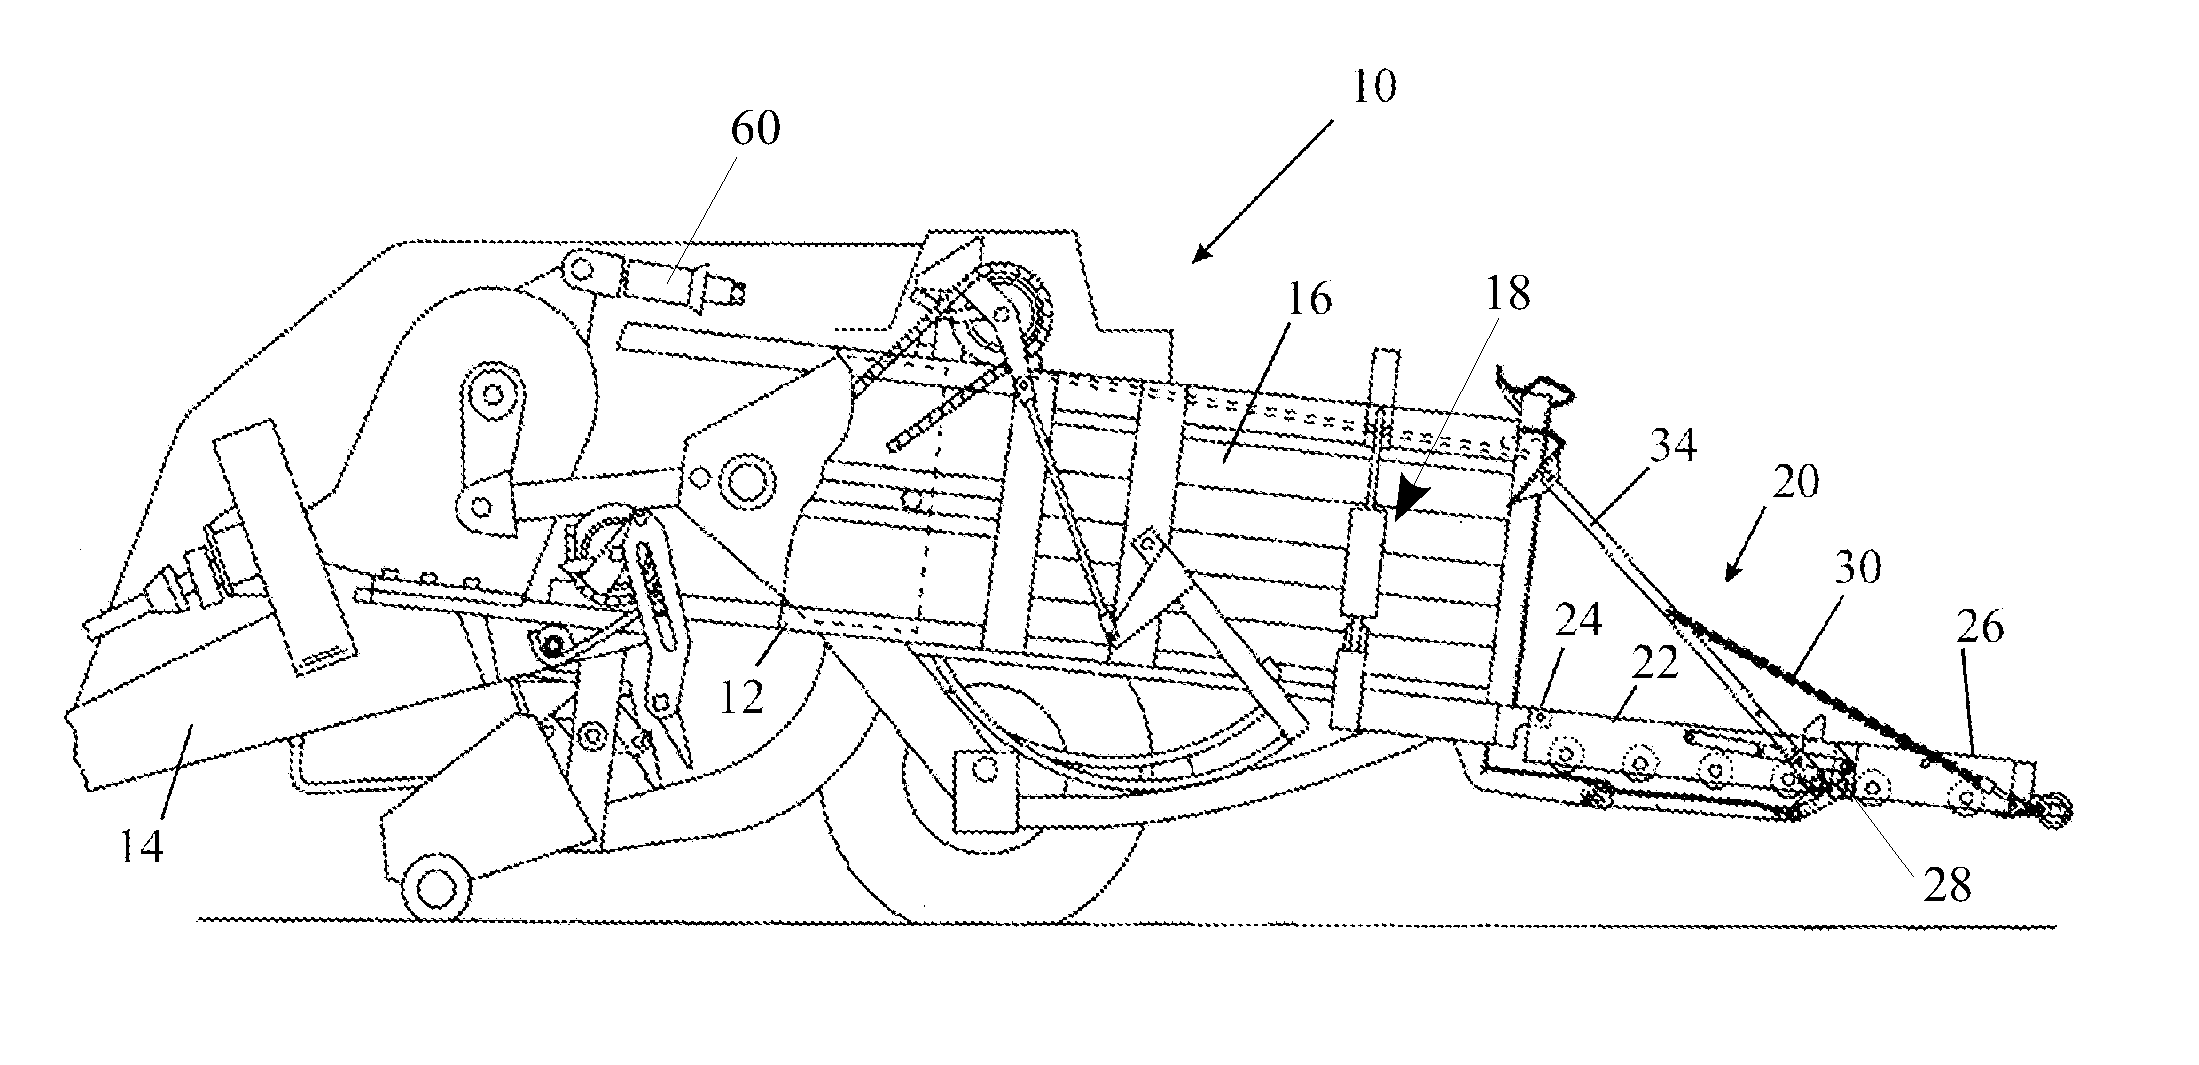 Patente Us20130042770 - Square Baler And A Related Control Method